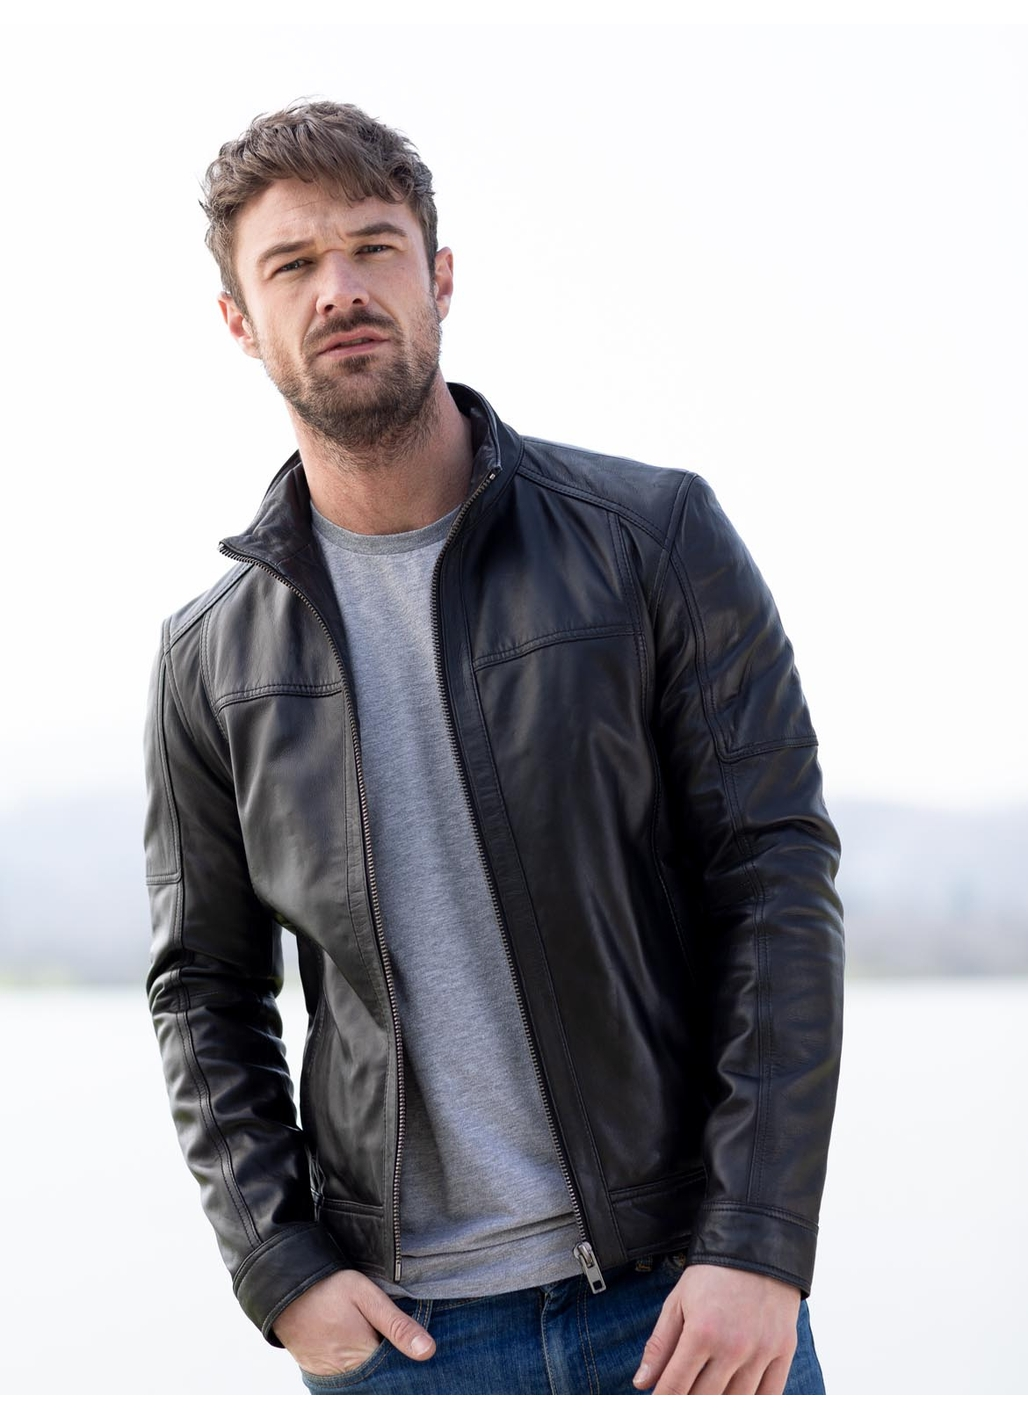 Penrith Leather Jacket in Black